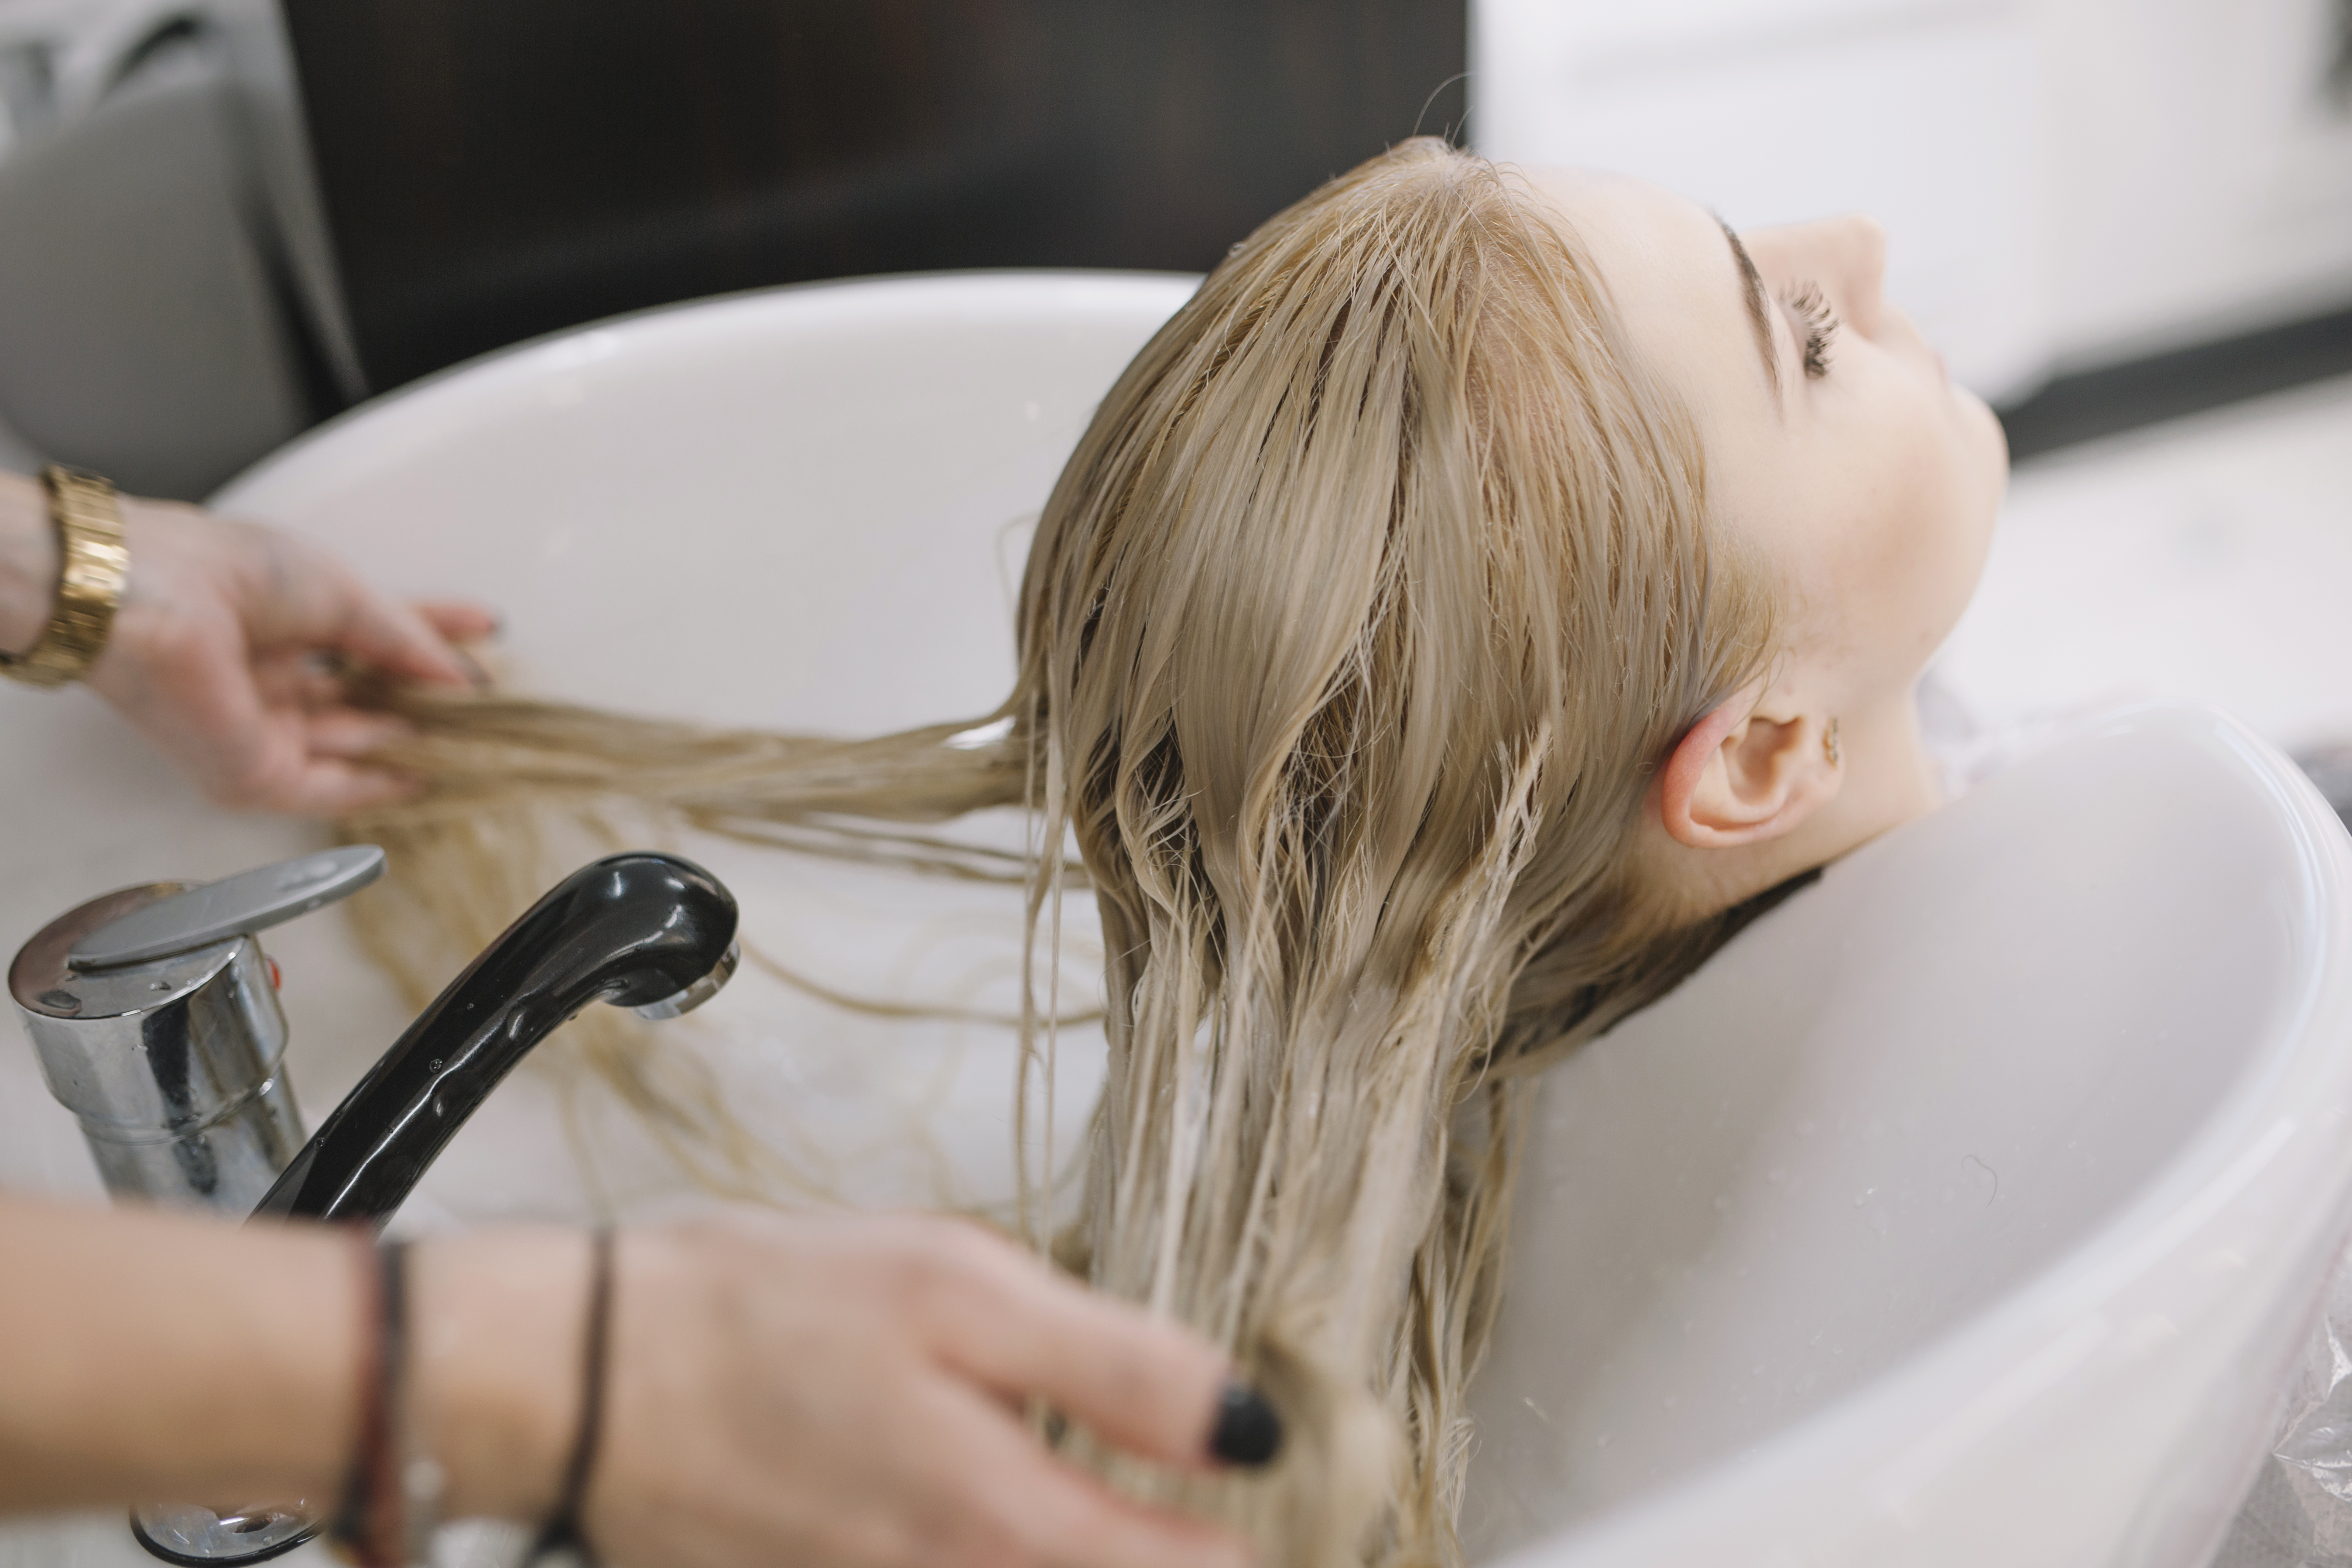 hairdresser washing client hair with ketoconazole shampoo